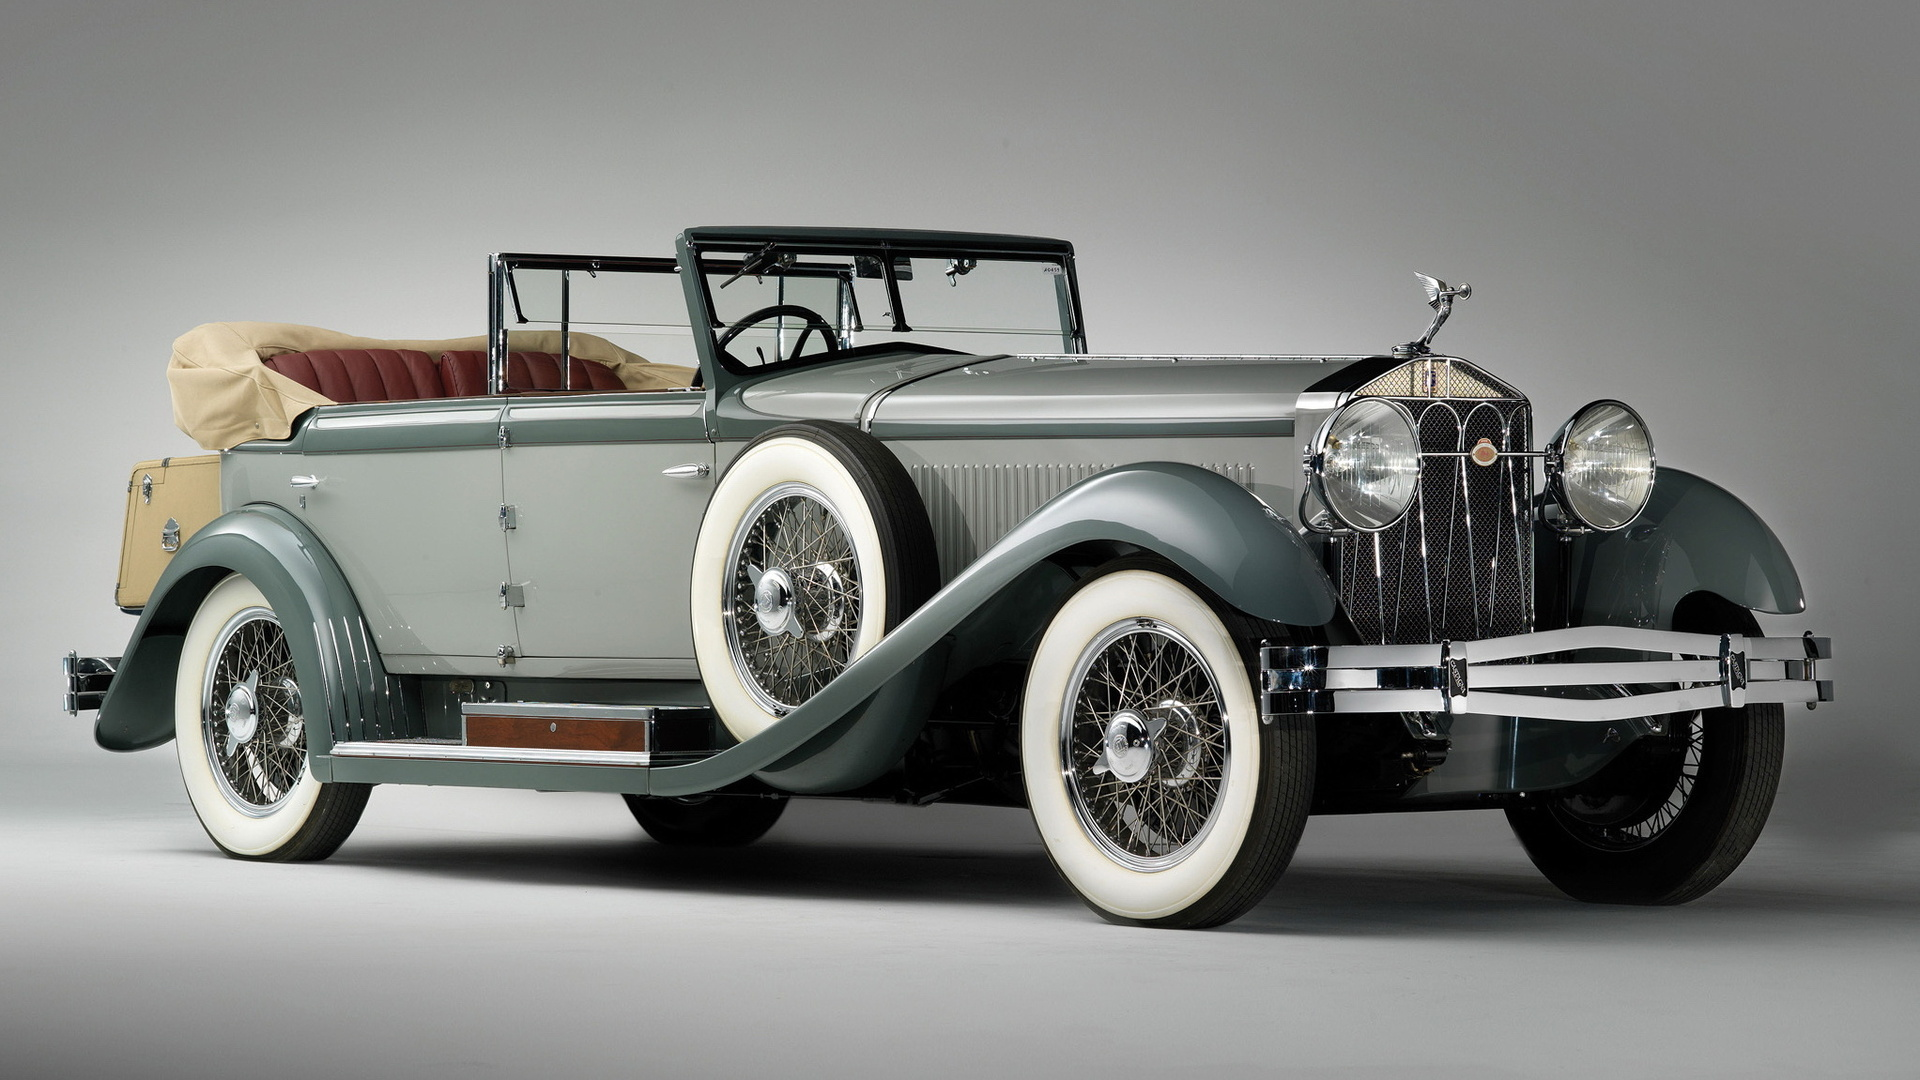 Luxury Cars Vs Vintage Cars: Which Should You Choose?